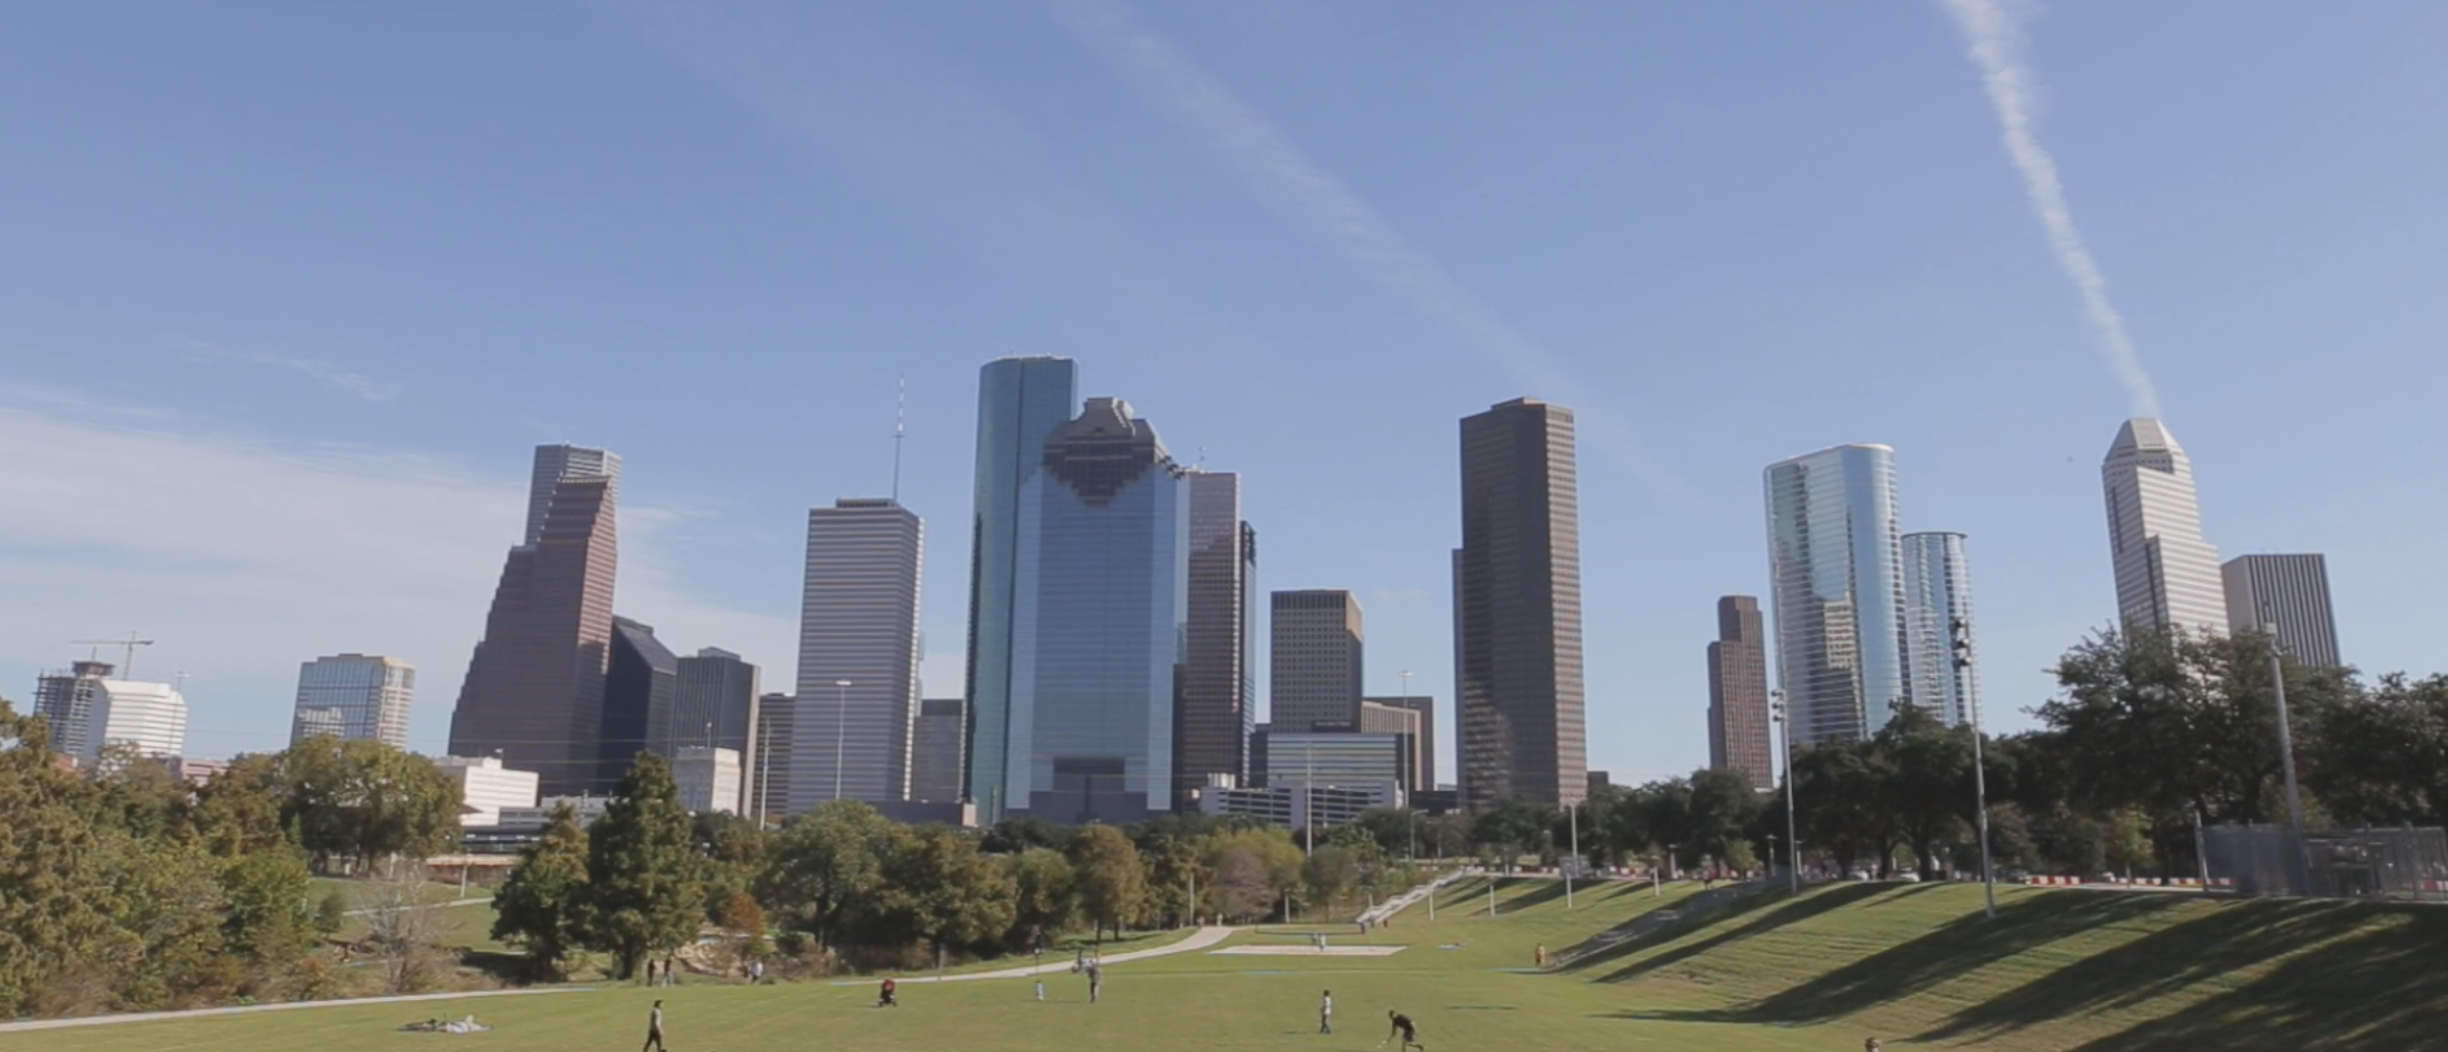 Houston | Part 1 – Sojourn Heights